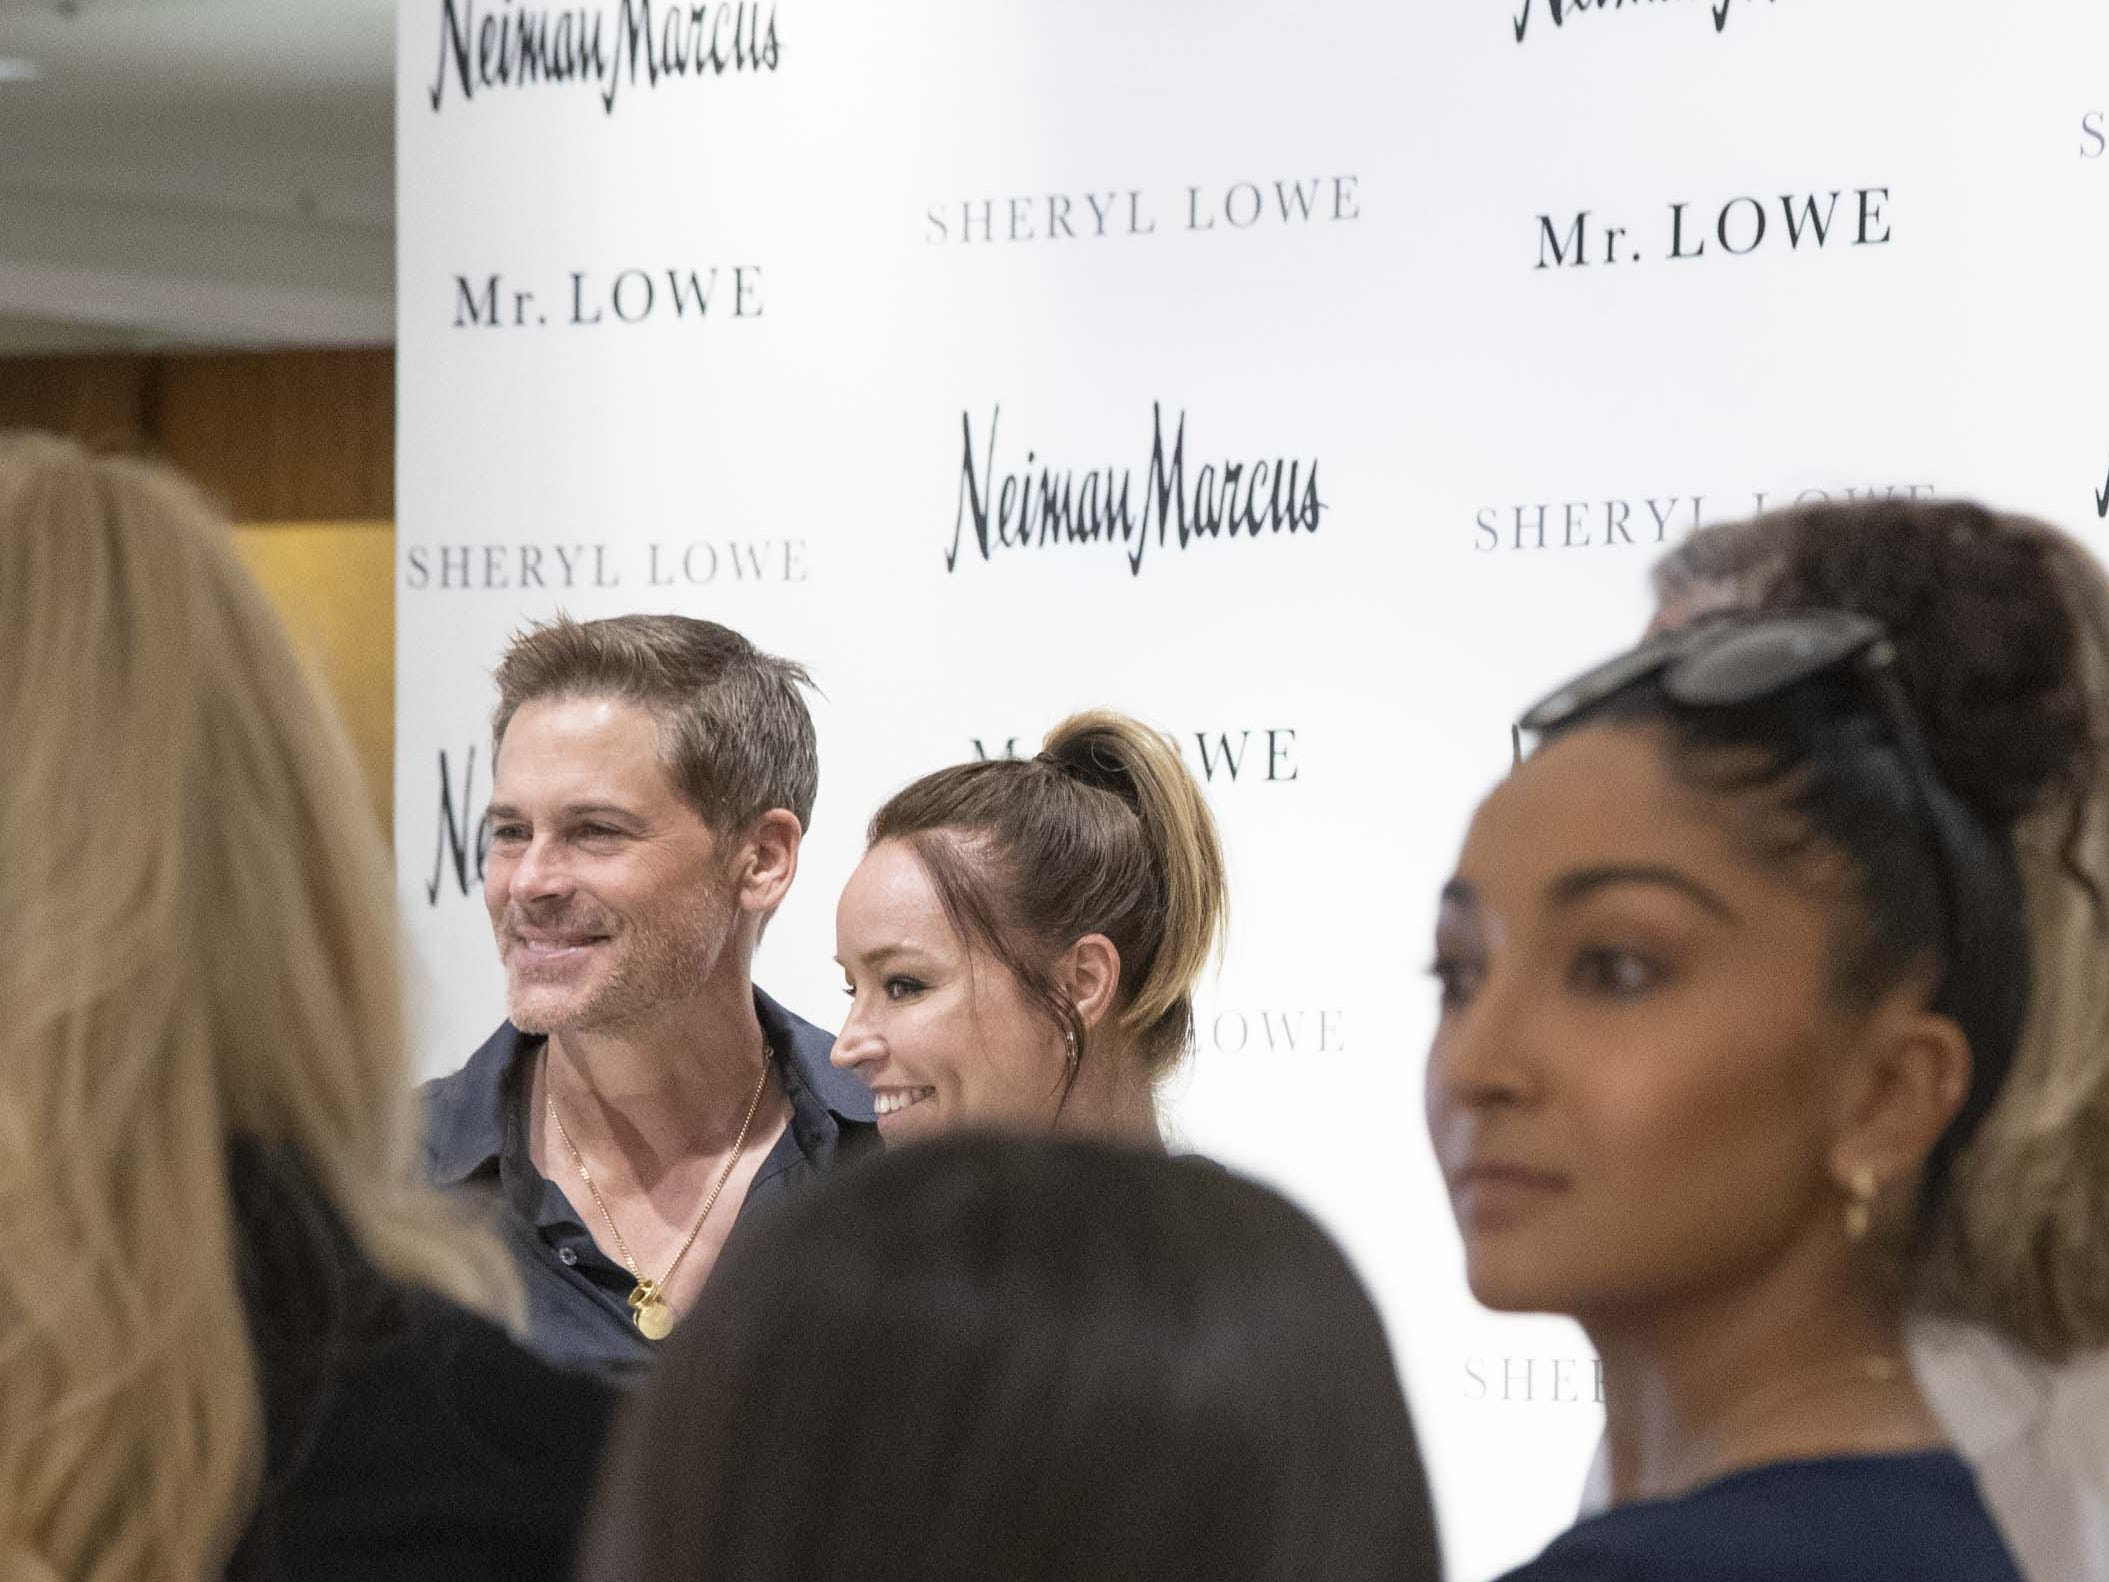 Actor Rob Lowe gets his photo taken with fans during an event introducing his new men's jewelry collection at Scottsdale Fashion Square on March 28, 2019.